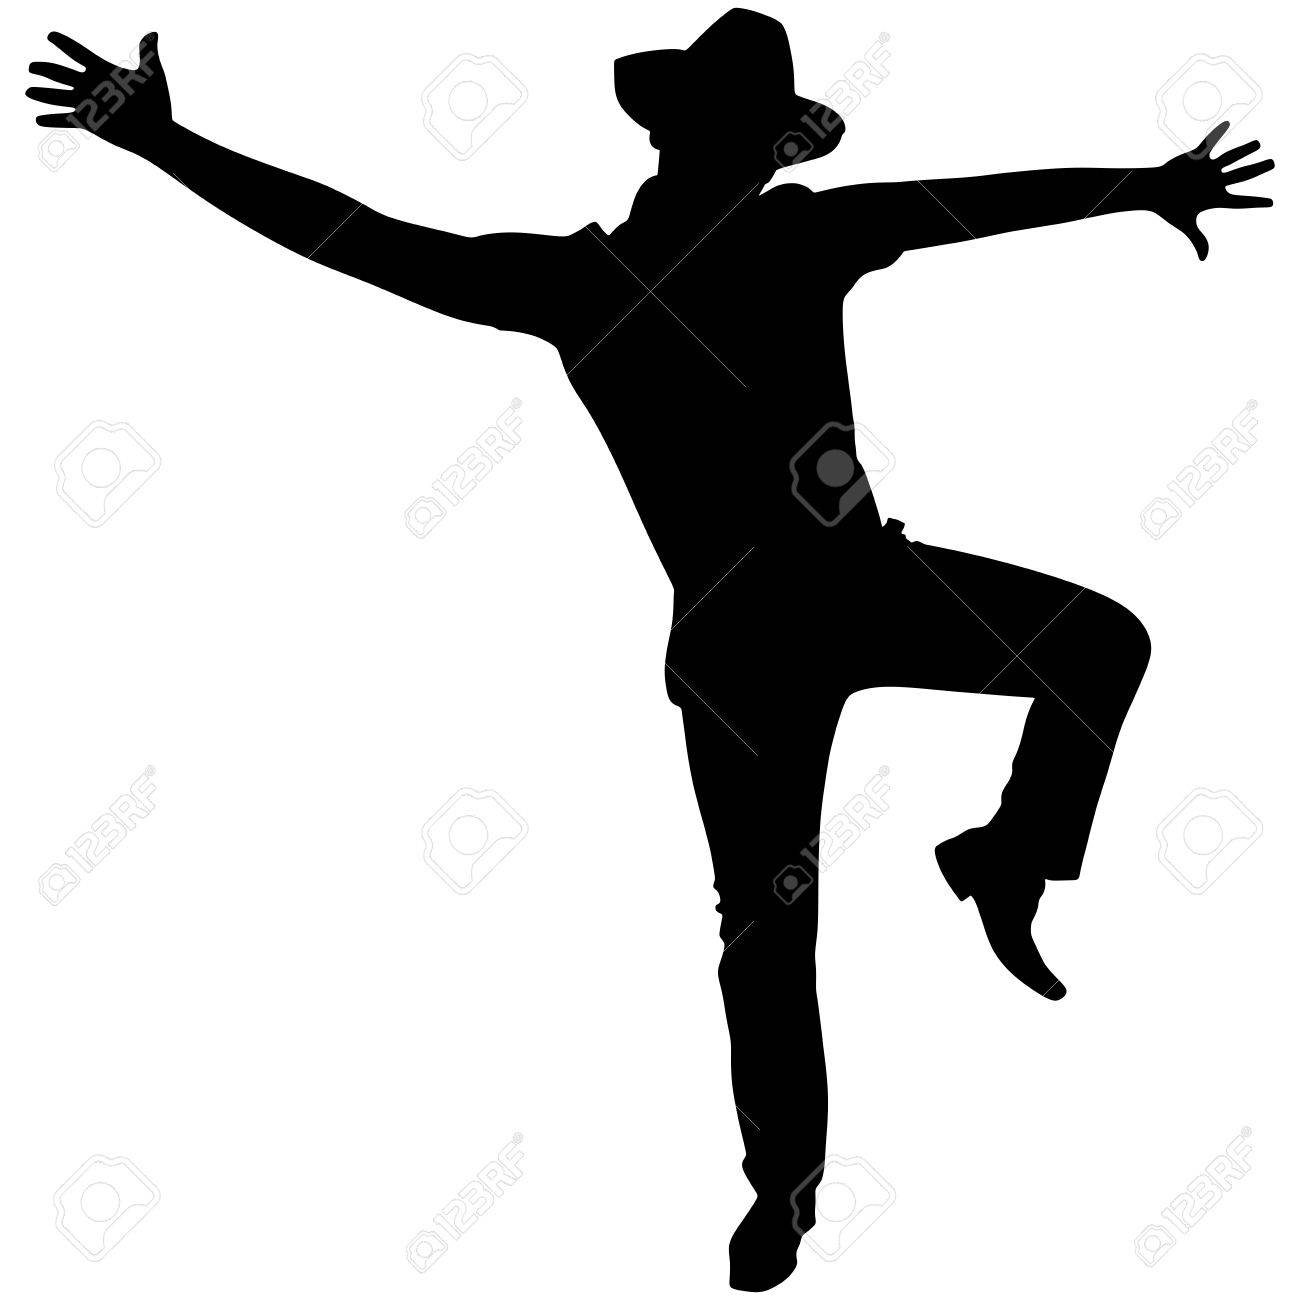 man with hat dancing silhouette vector royalty free cliparts rh 123rf com silhouette dancer vector girl dance silhouette vector